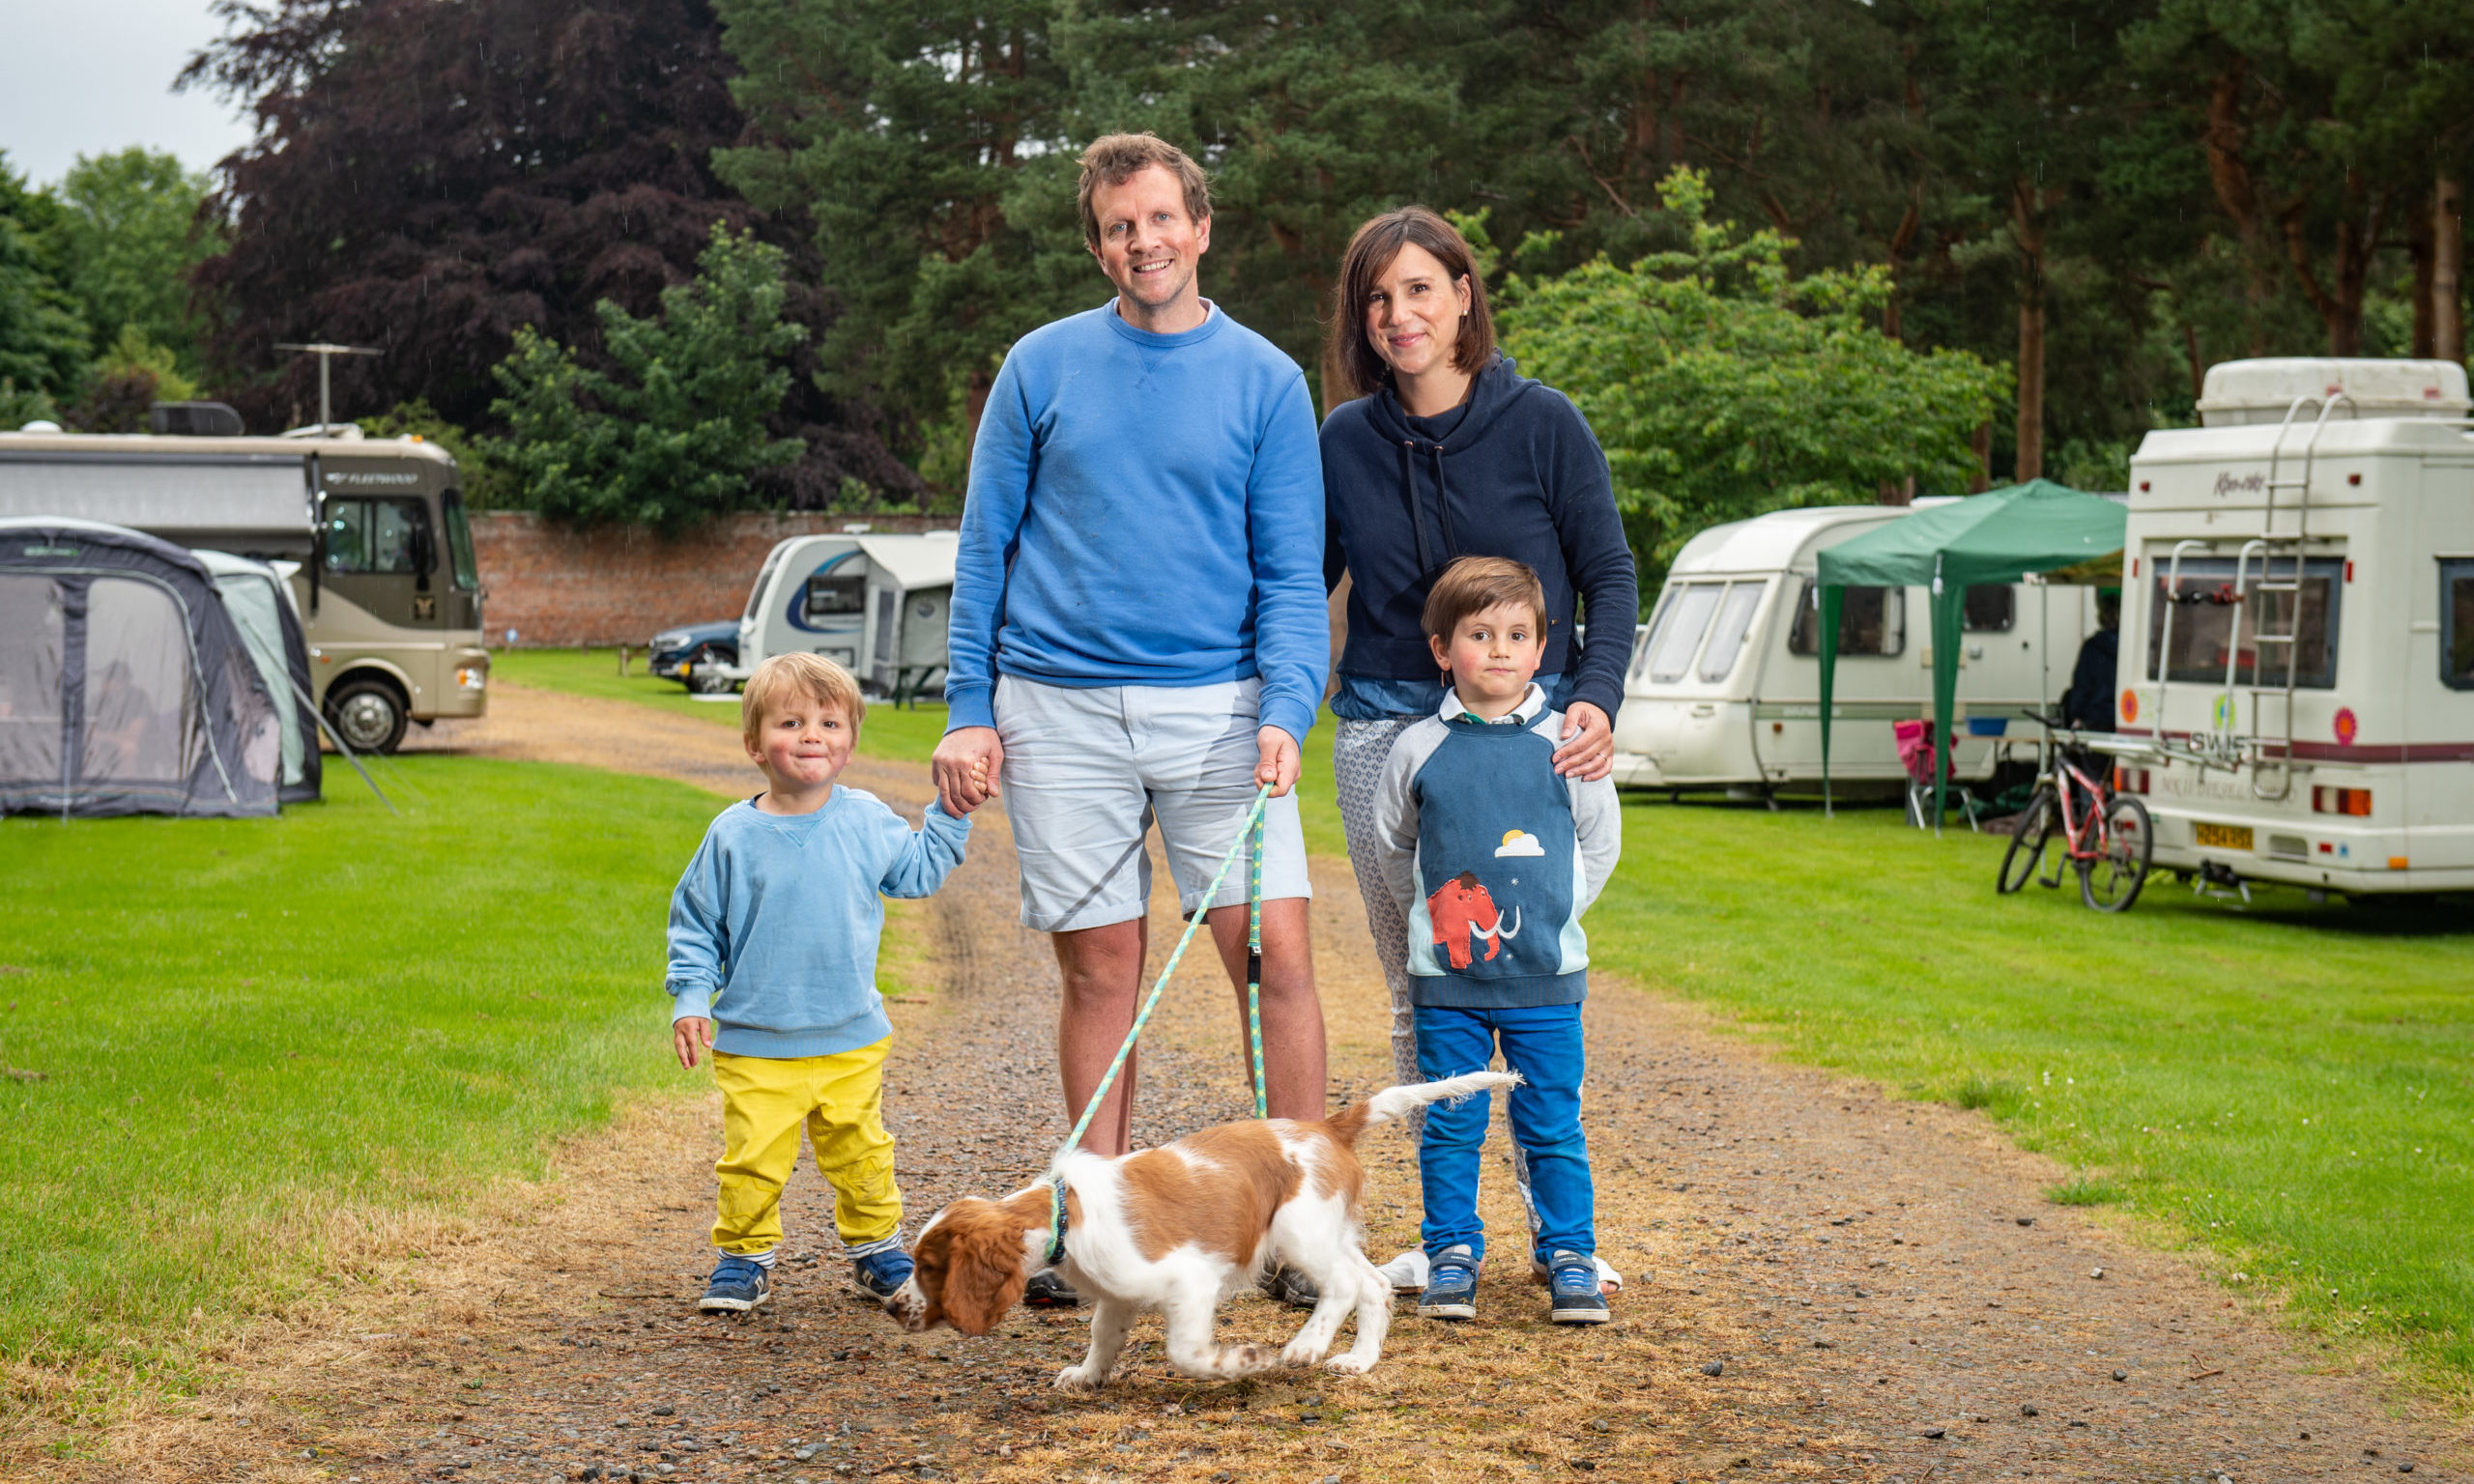 Speyside Gardens Caravan Park in Aberlour owners Oliver and Amy Lyon with their family. Picture by Jason Hedges.